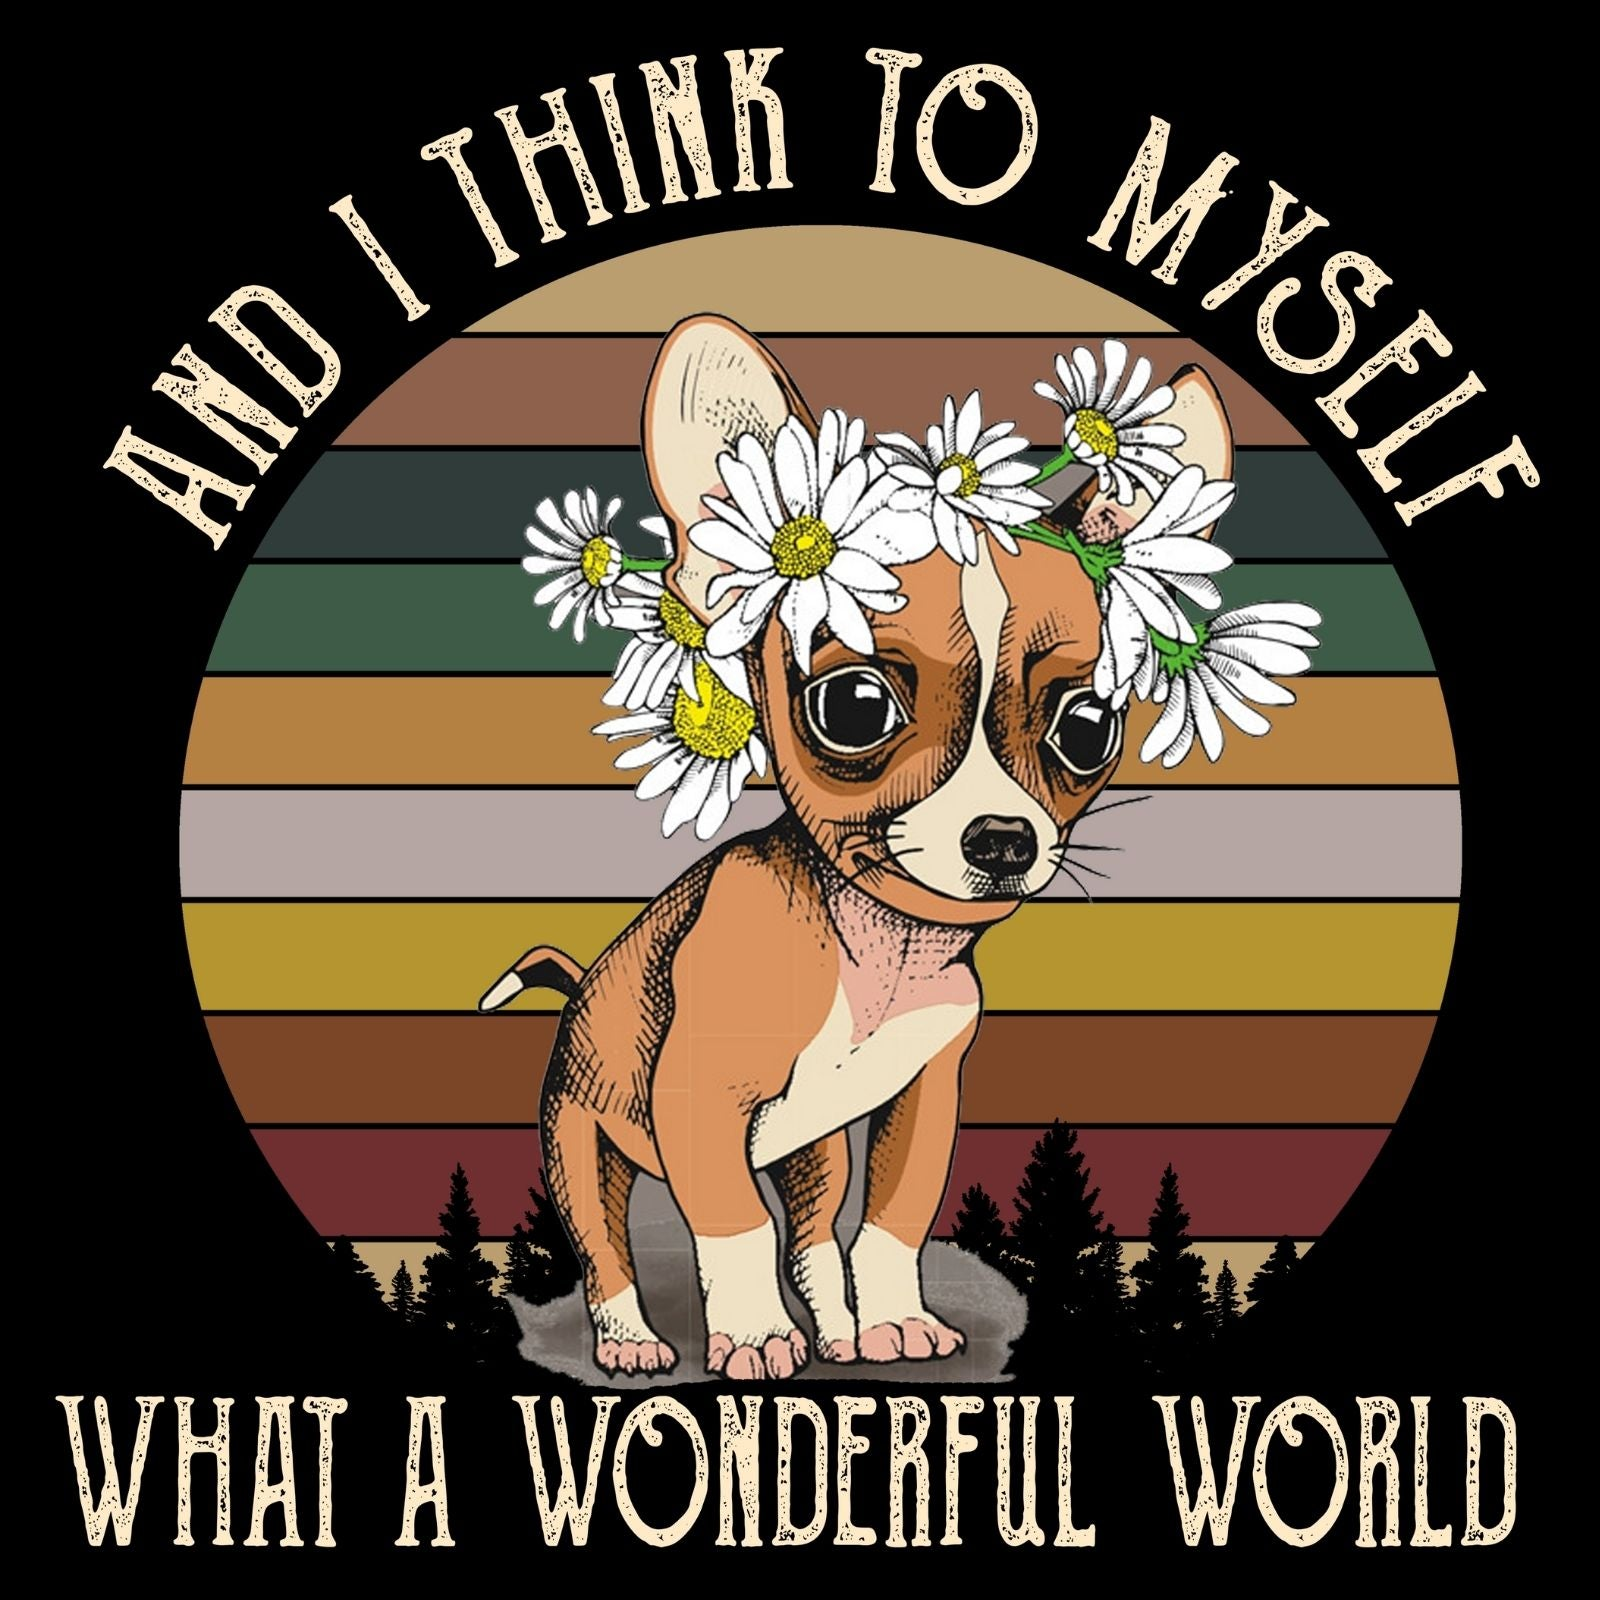 And I Think To Myself What A Wonderful World CHIHUAHUA - Bastard Graphics